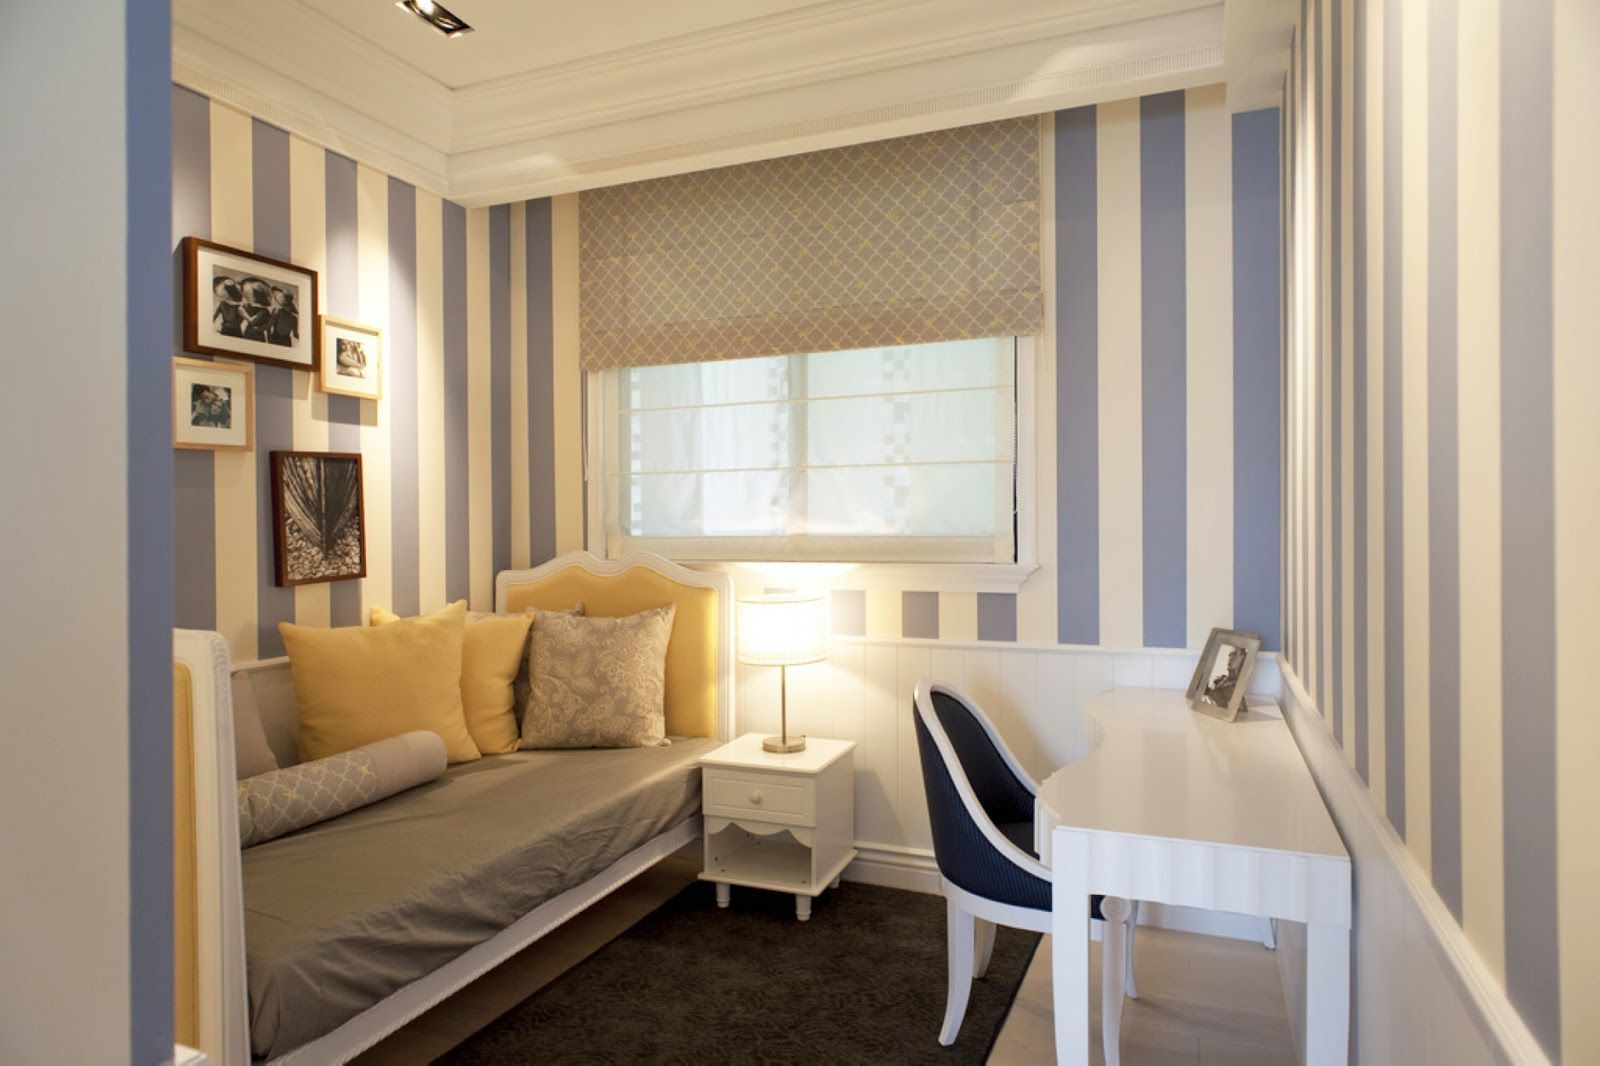 Very Small Guest Bedroom Ideas taiwan penthouse condo decor: dressing room, striped wallpaper